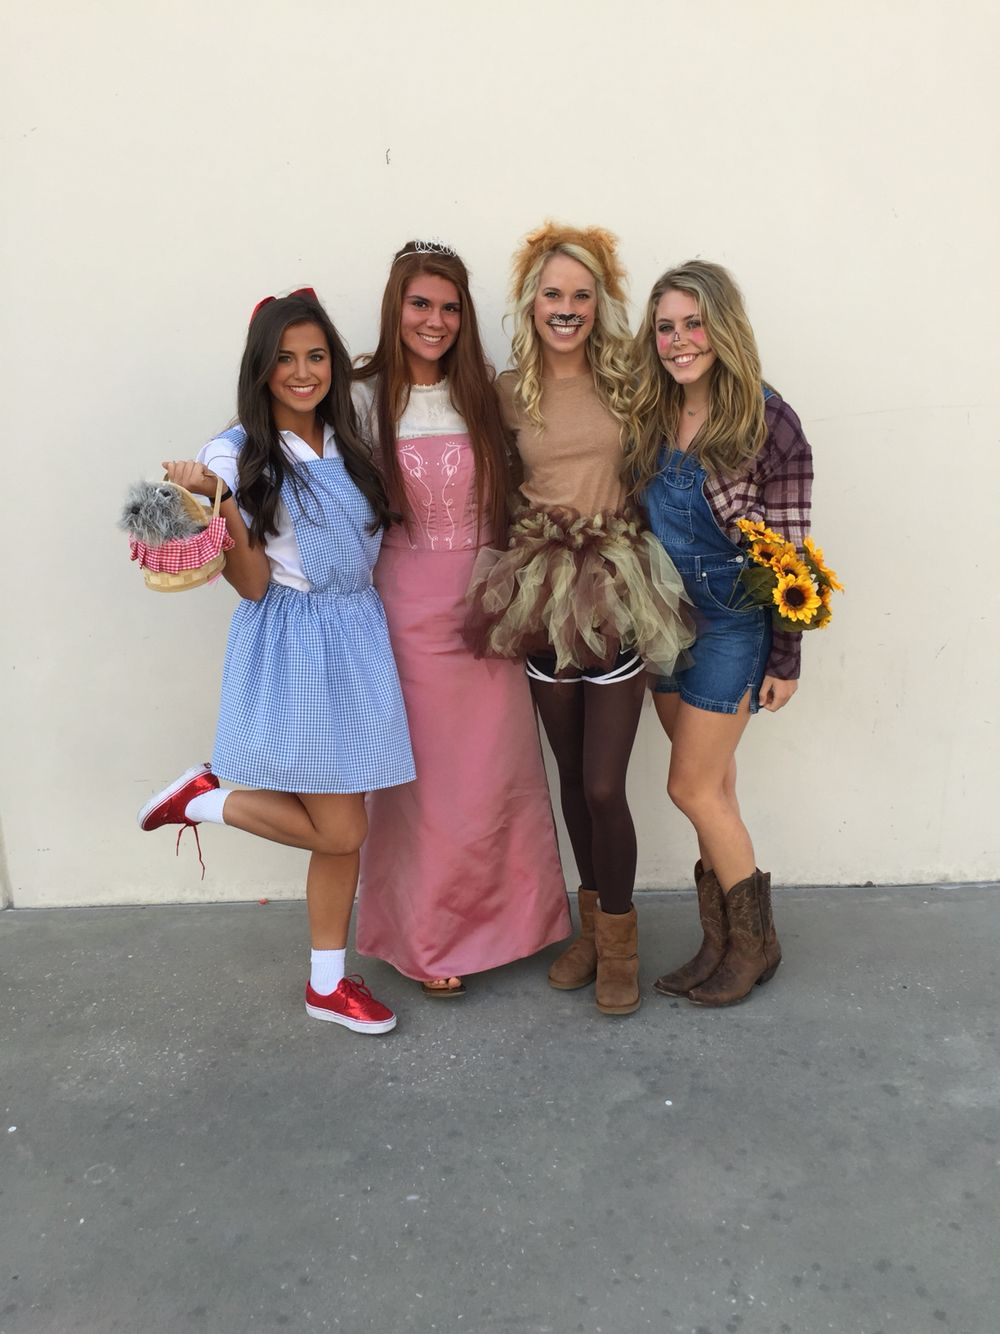 Wizard of oz Halloween group costume Cute group